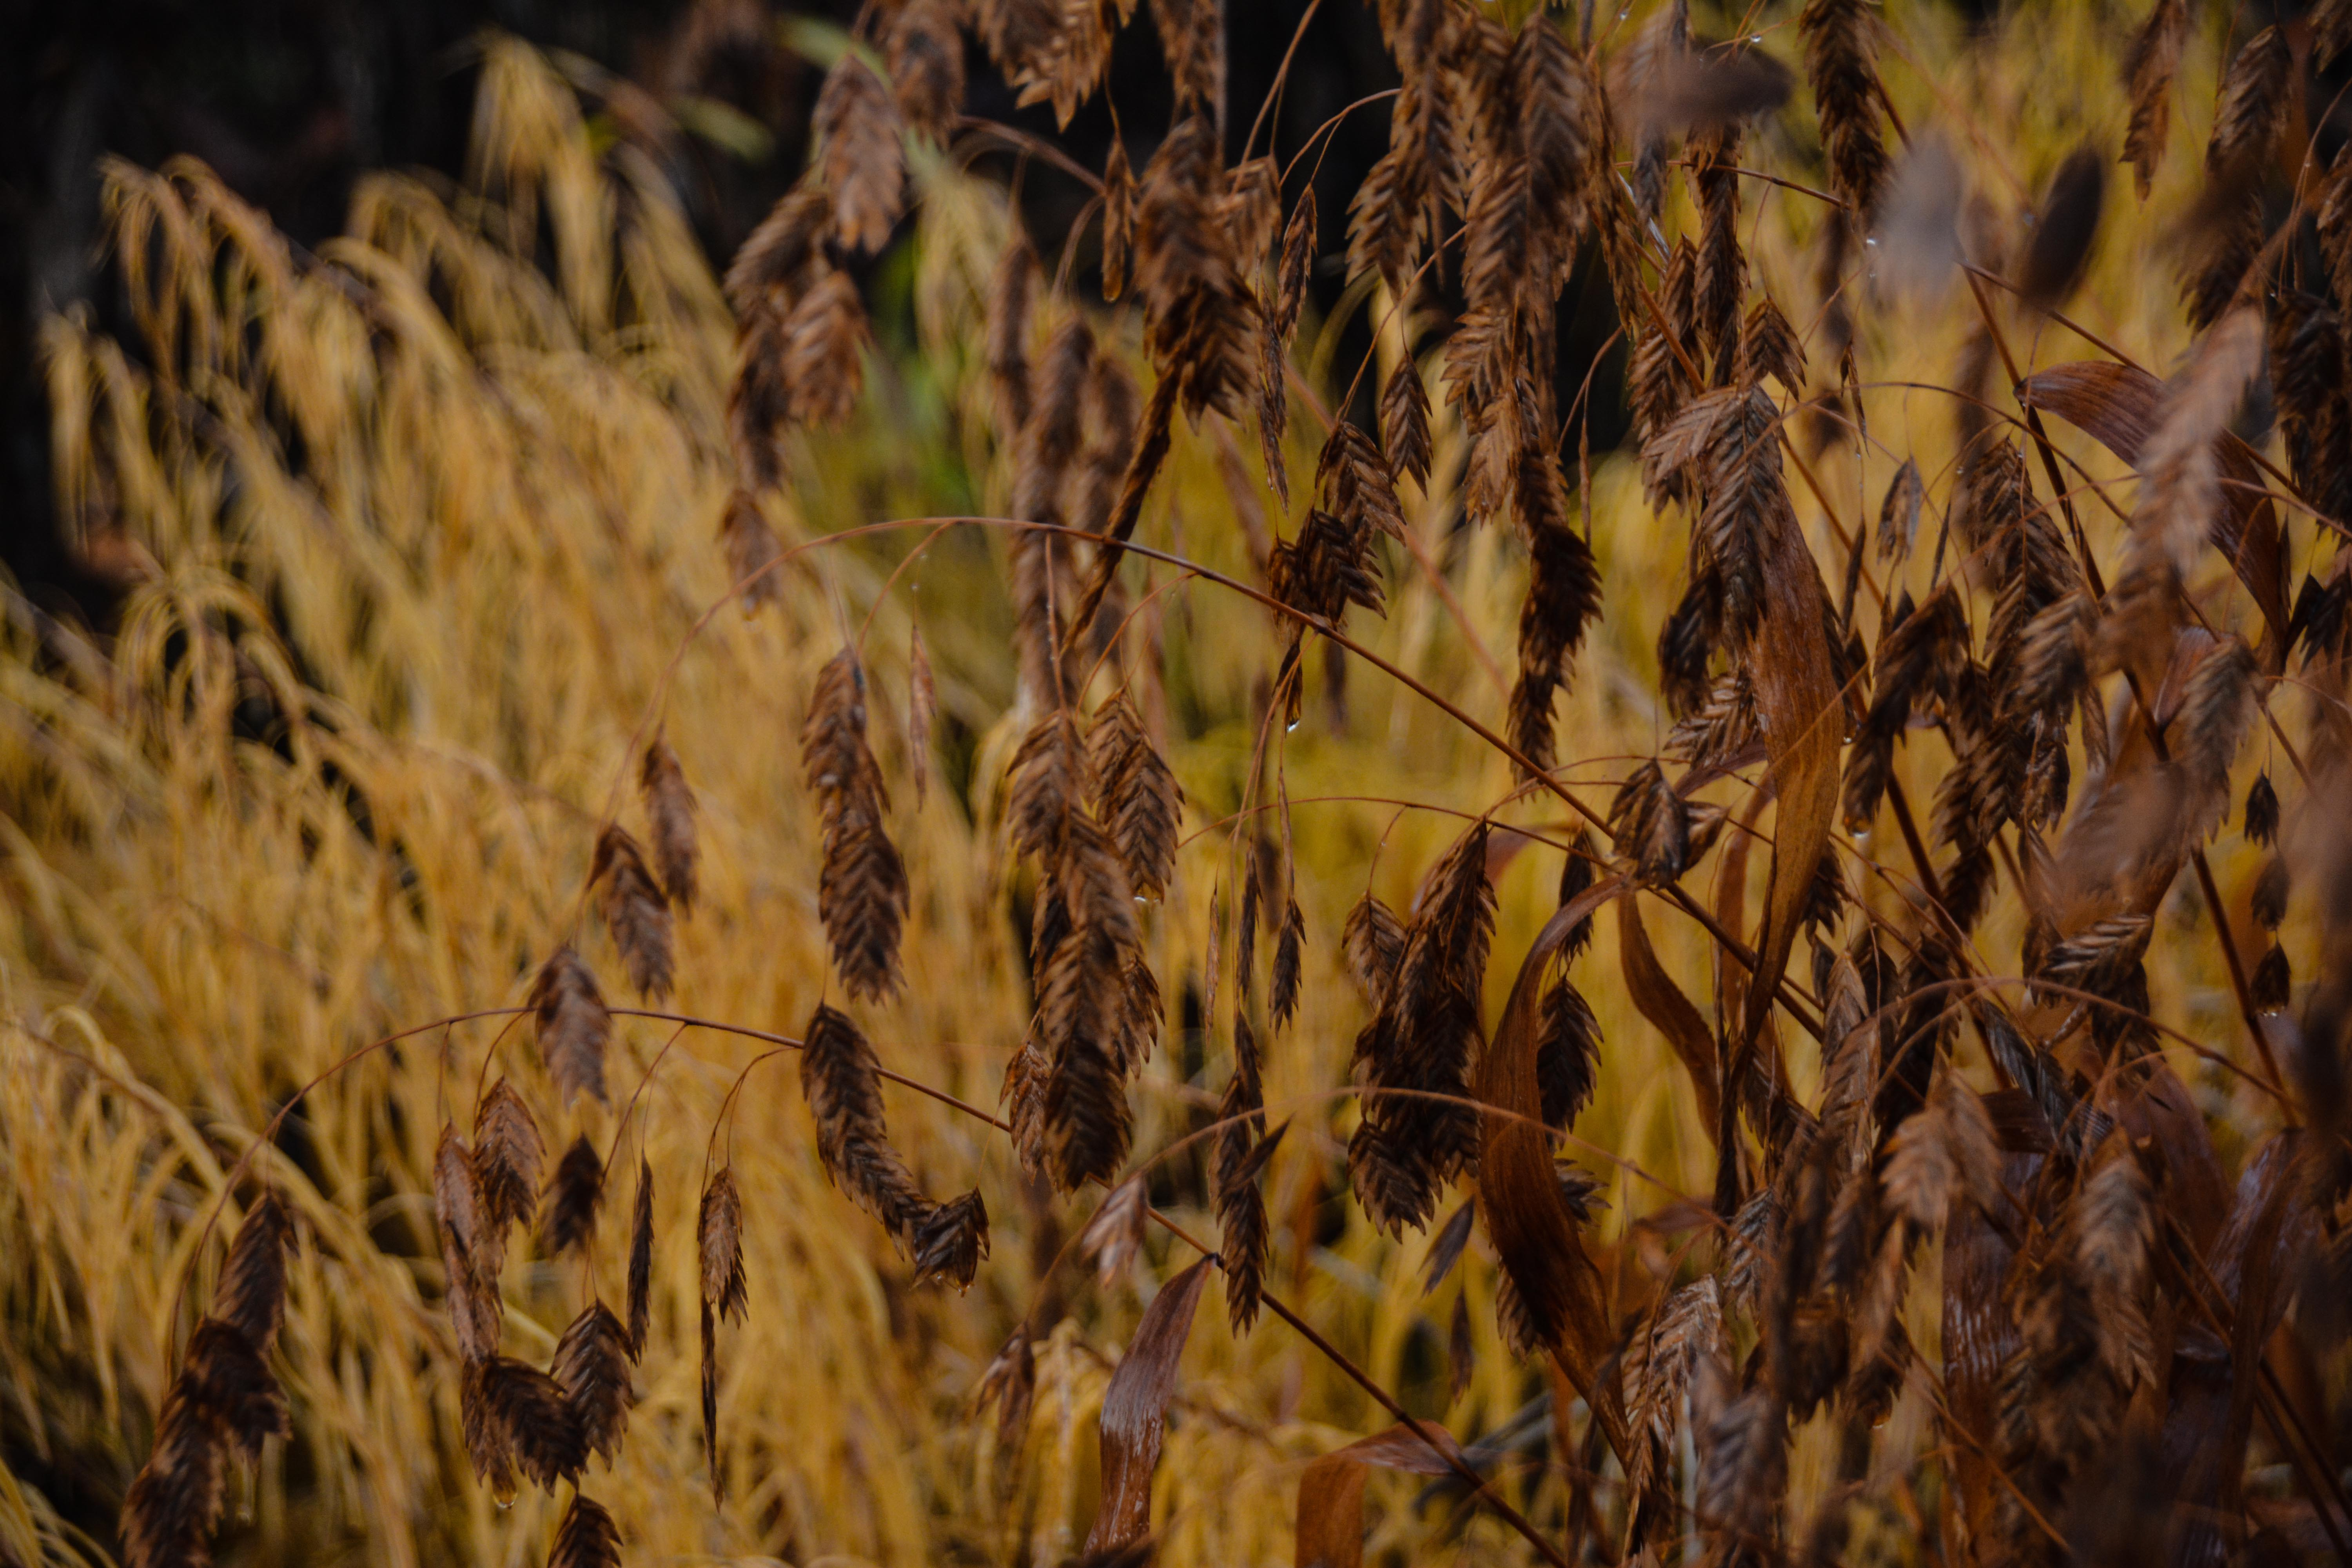 Chasmanthium latifolium- norther sea oats, Beauty in Decay, Thinking Outside the Boxwood